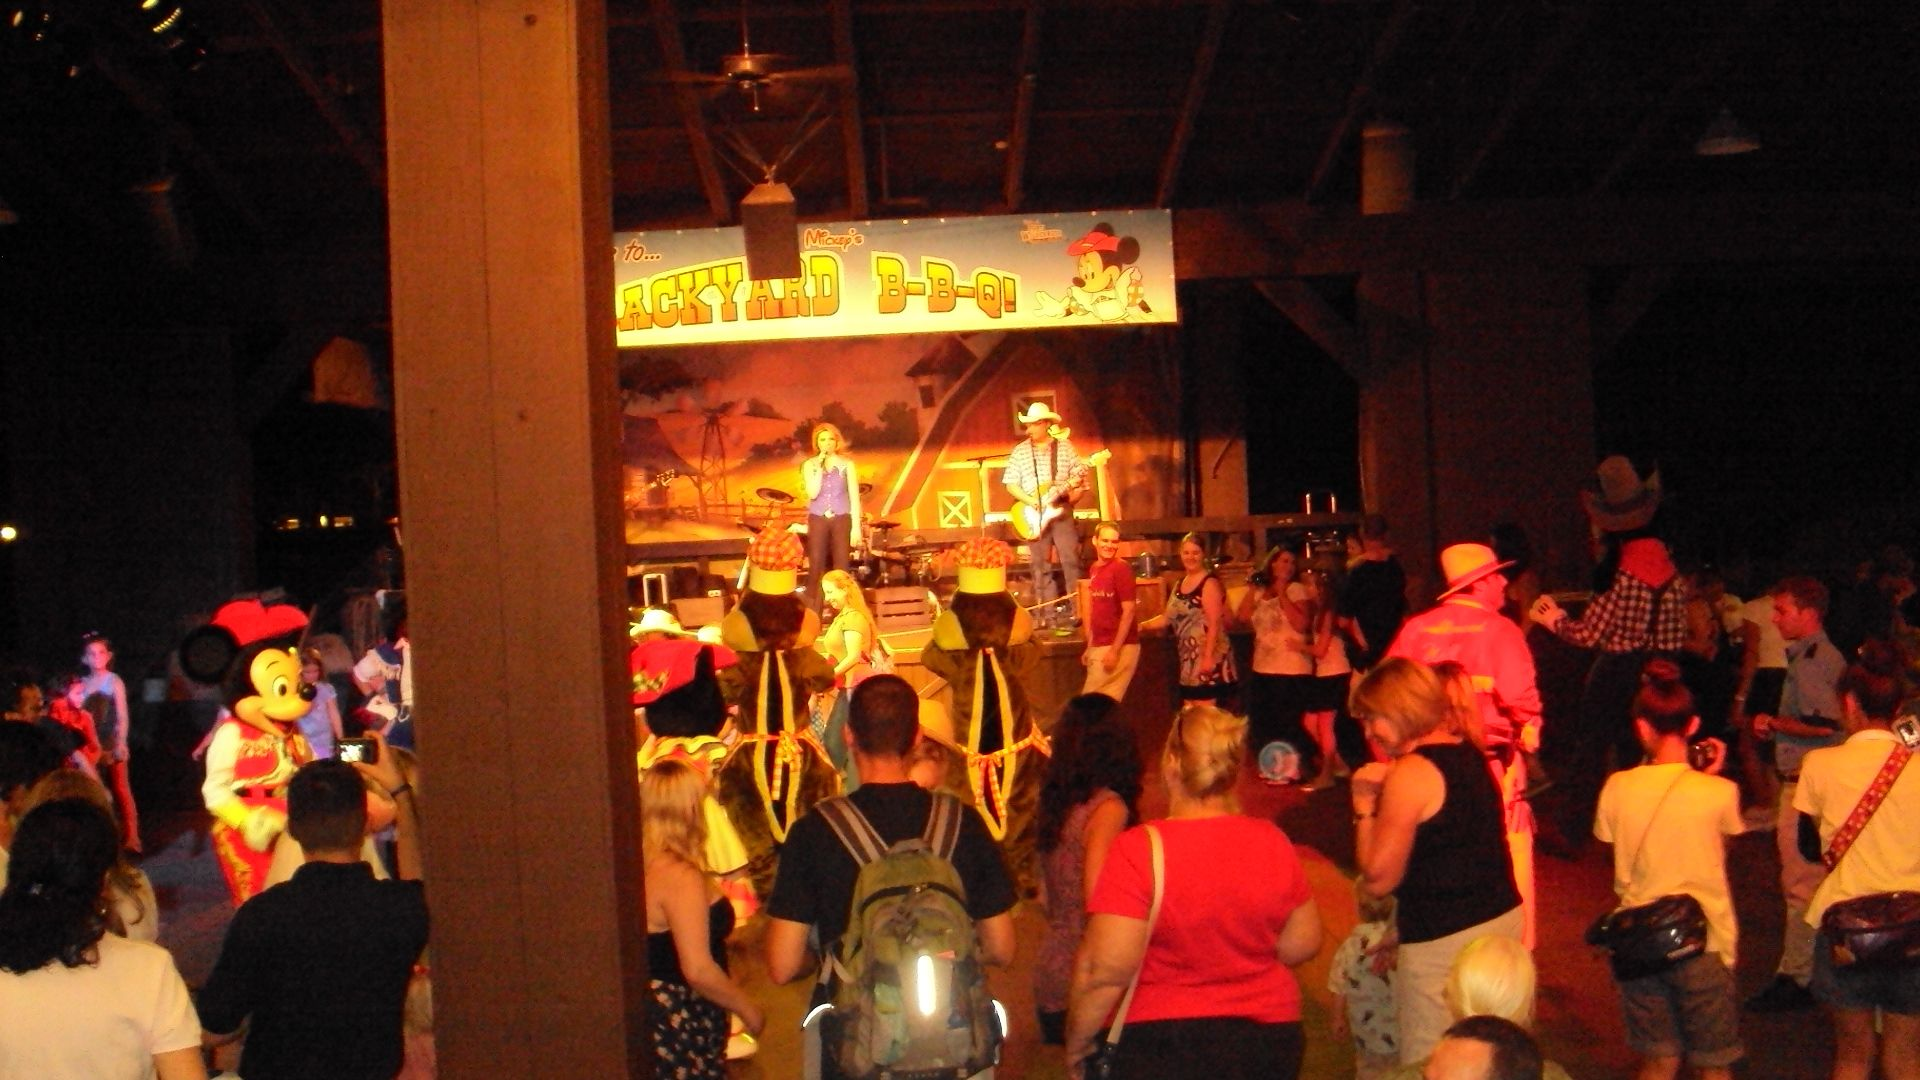 disney camp wilderness backyard bbq great party all you can eat